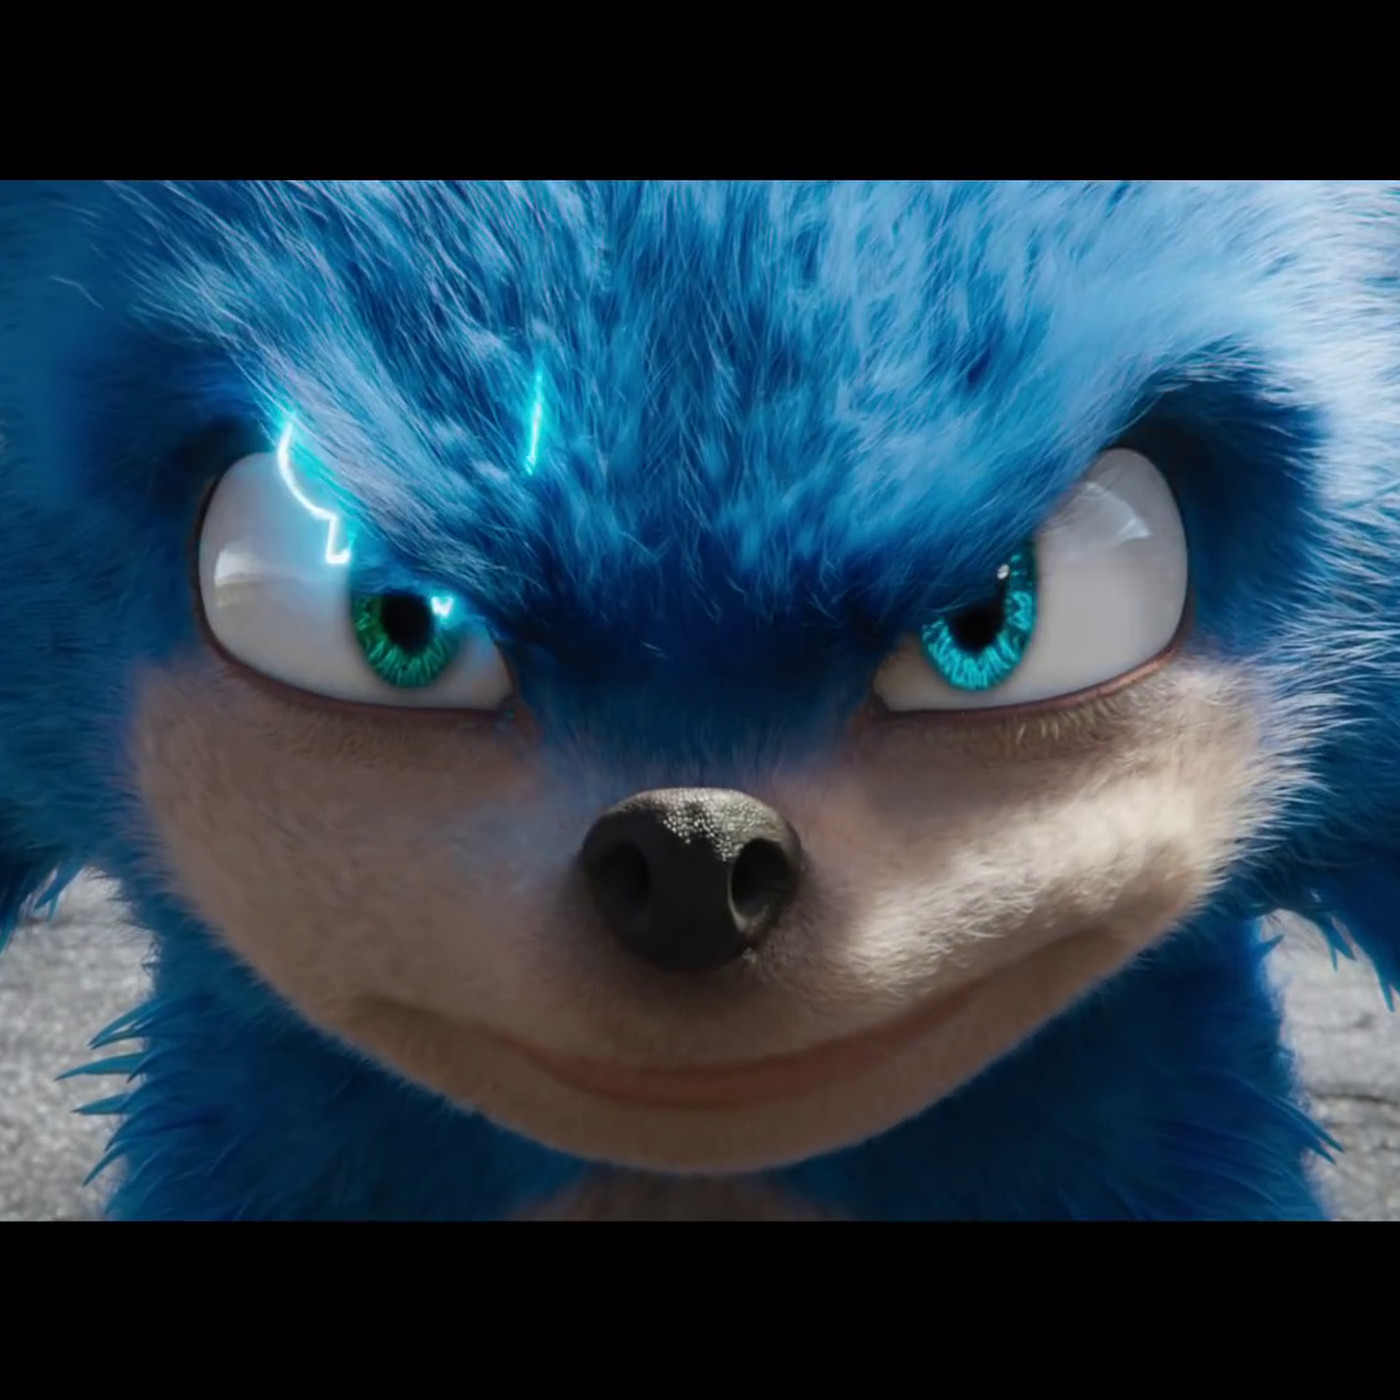 Sonic The Hedgehog Trailer 11 Weird Changes From The Games Polygon